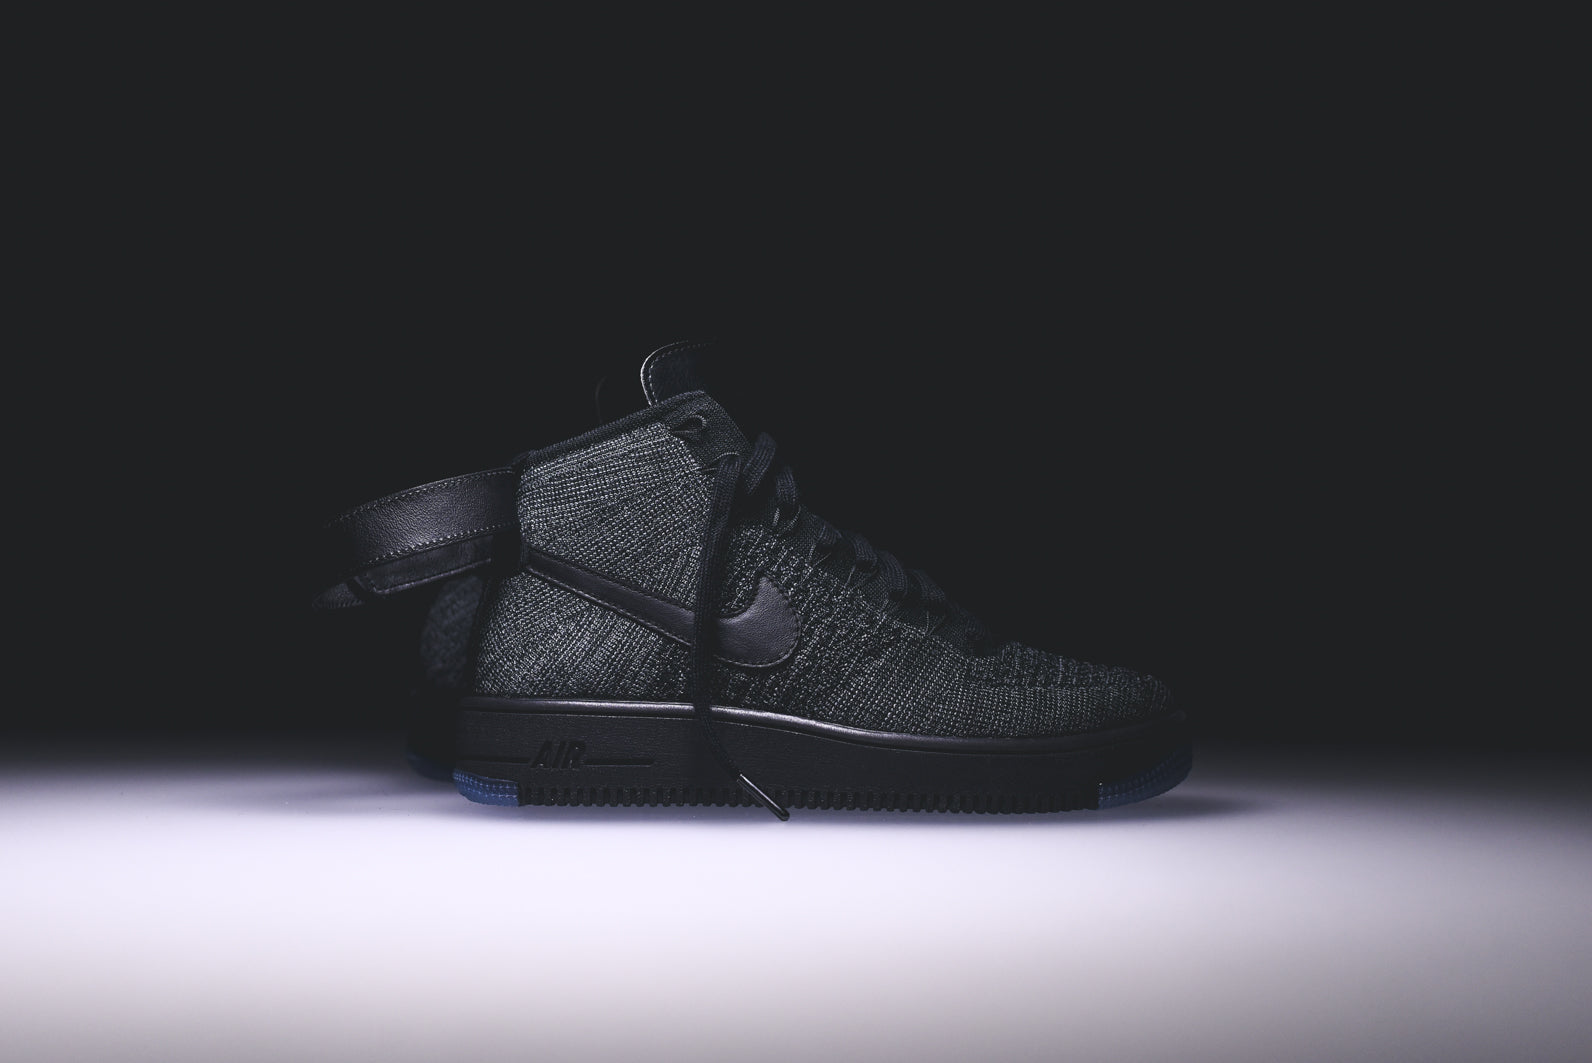 best website 24d12 a8b62 Kith Introduces Nike Online with Air Force 1 Flyknit Collection